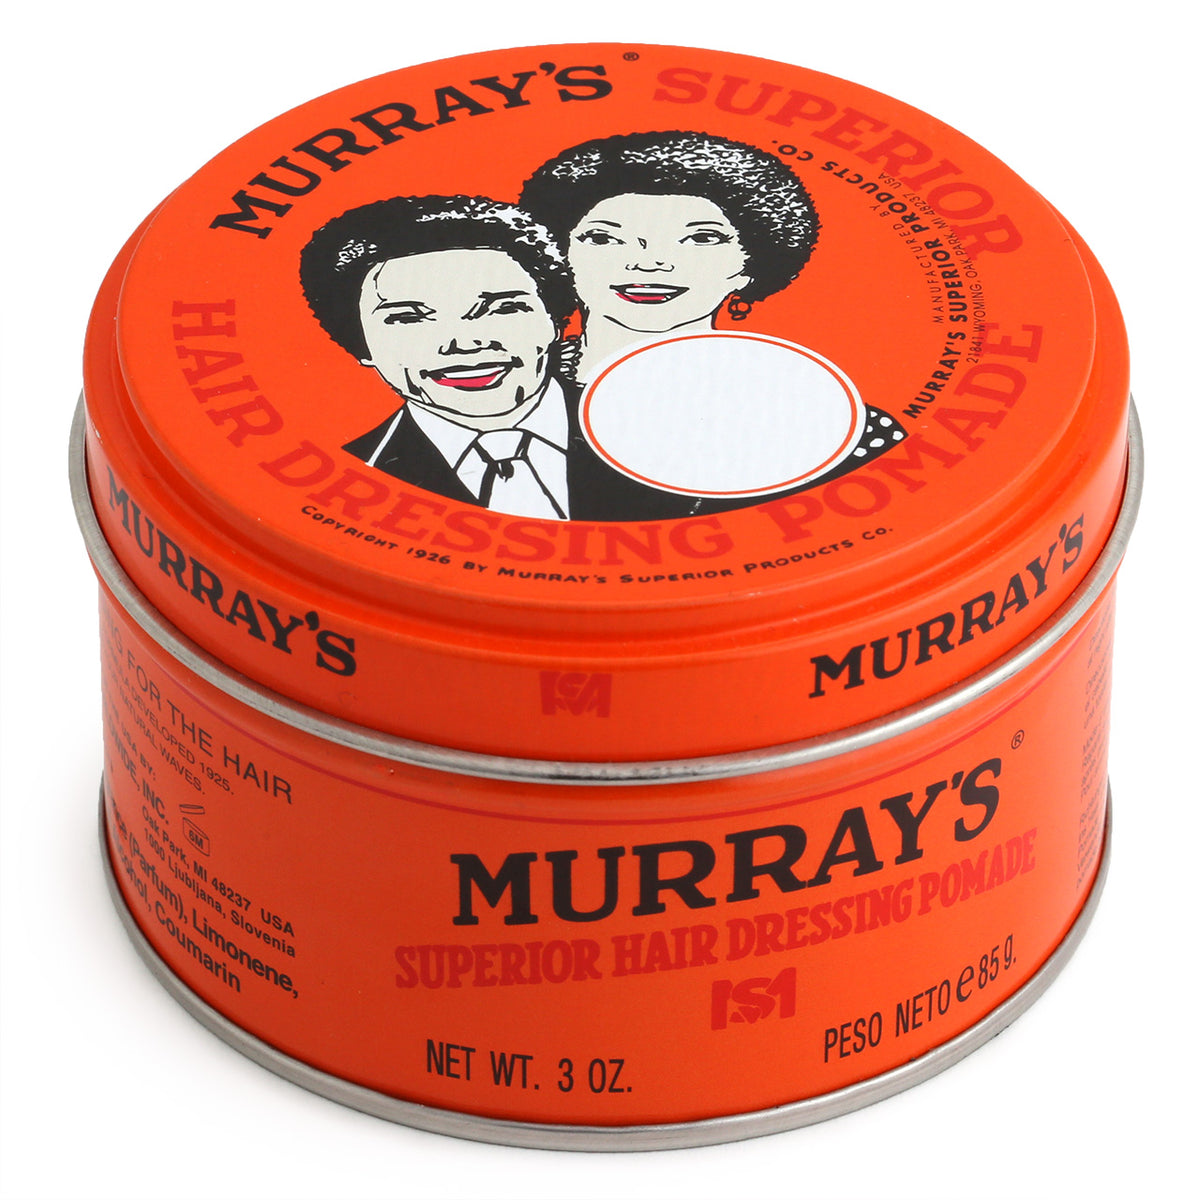 Murrays Superior Hair Dressing Pomade, 85g. Top view